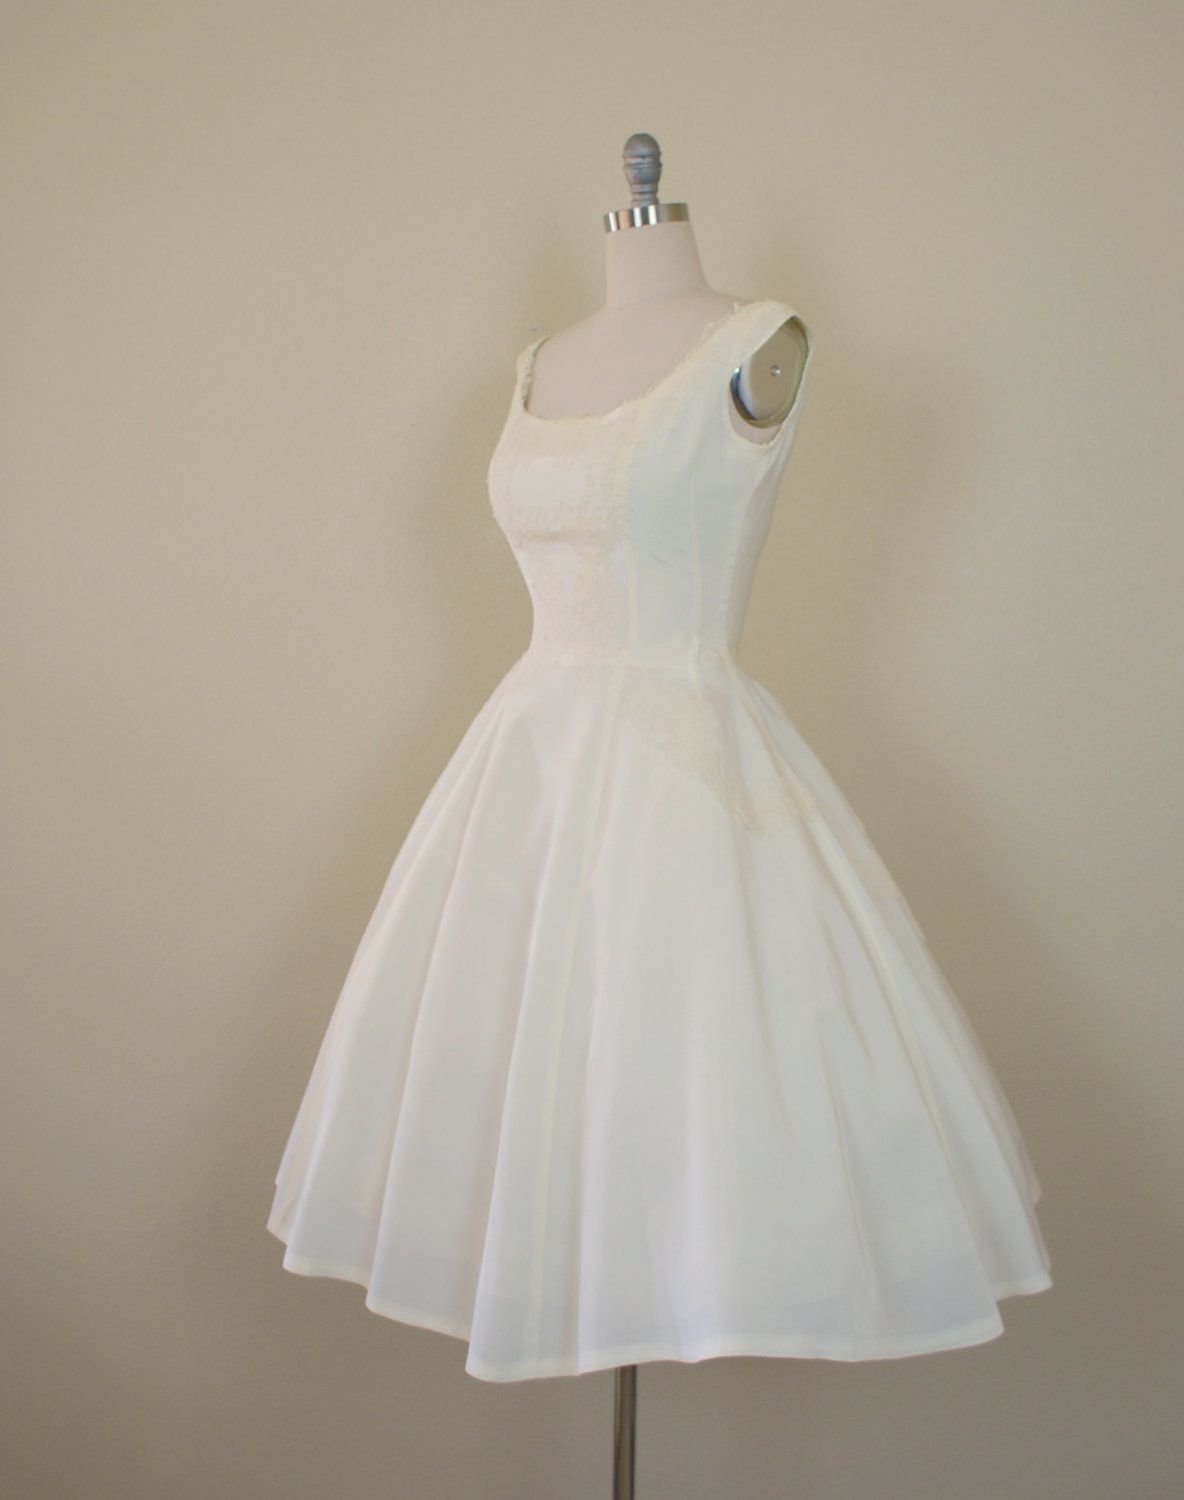 Vintage 1950s wedding dress ivory taffeta and lace short vintage 1950s wedding dress ivory taffeta and lace short wedding gown forever sciox Choice Image